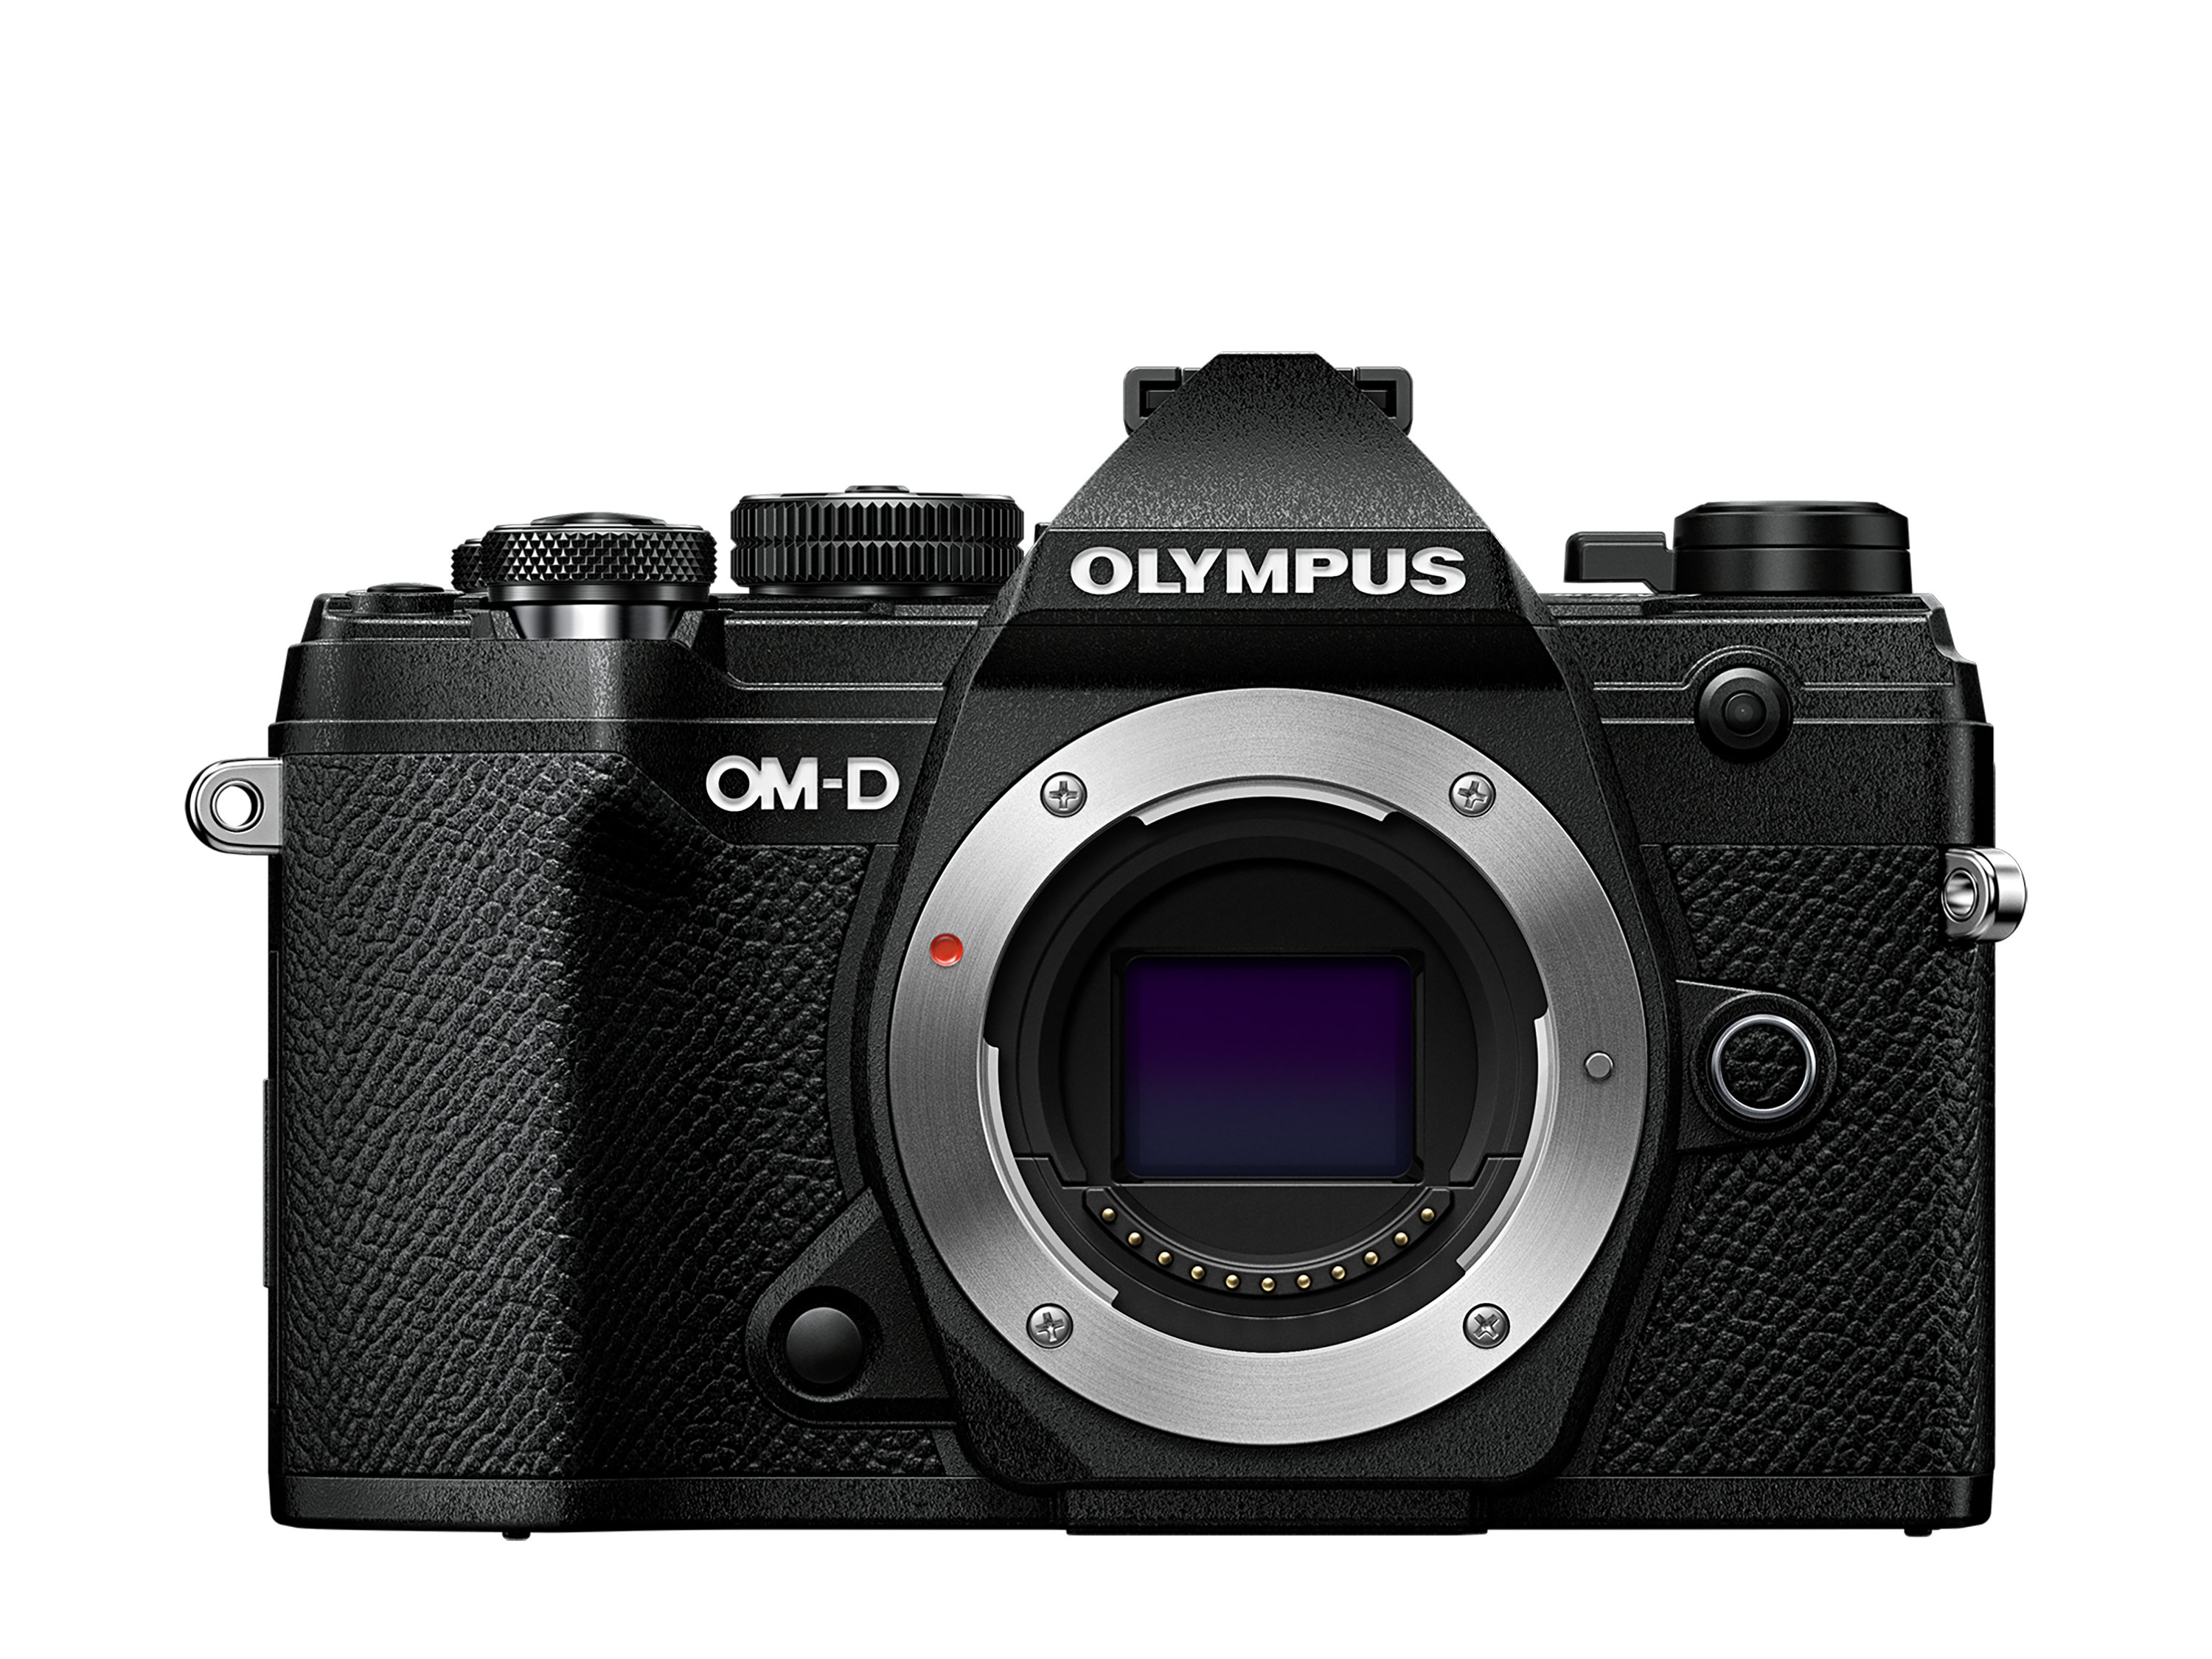 OM-D_E-M5_Mark_III_black_Product_000.jpg